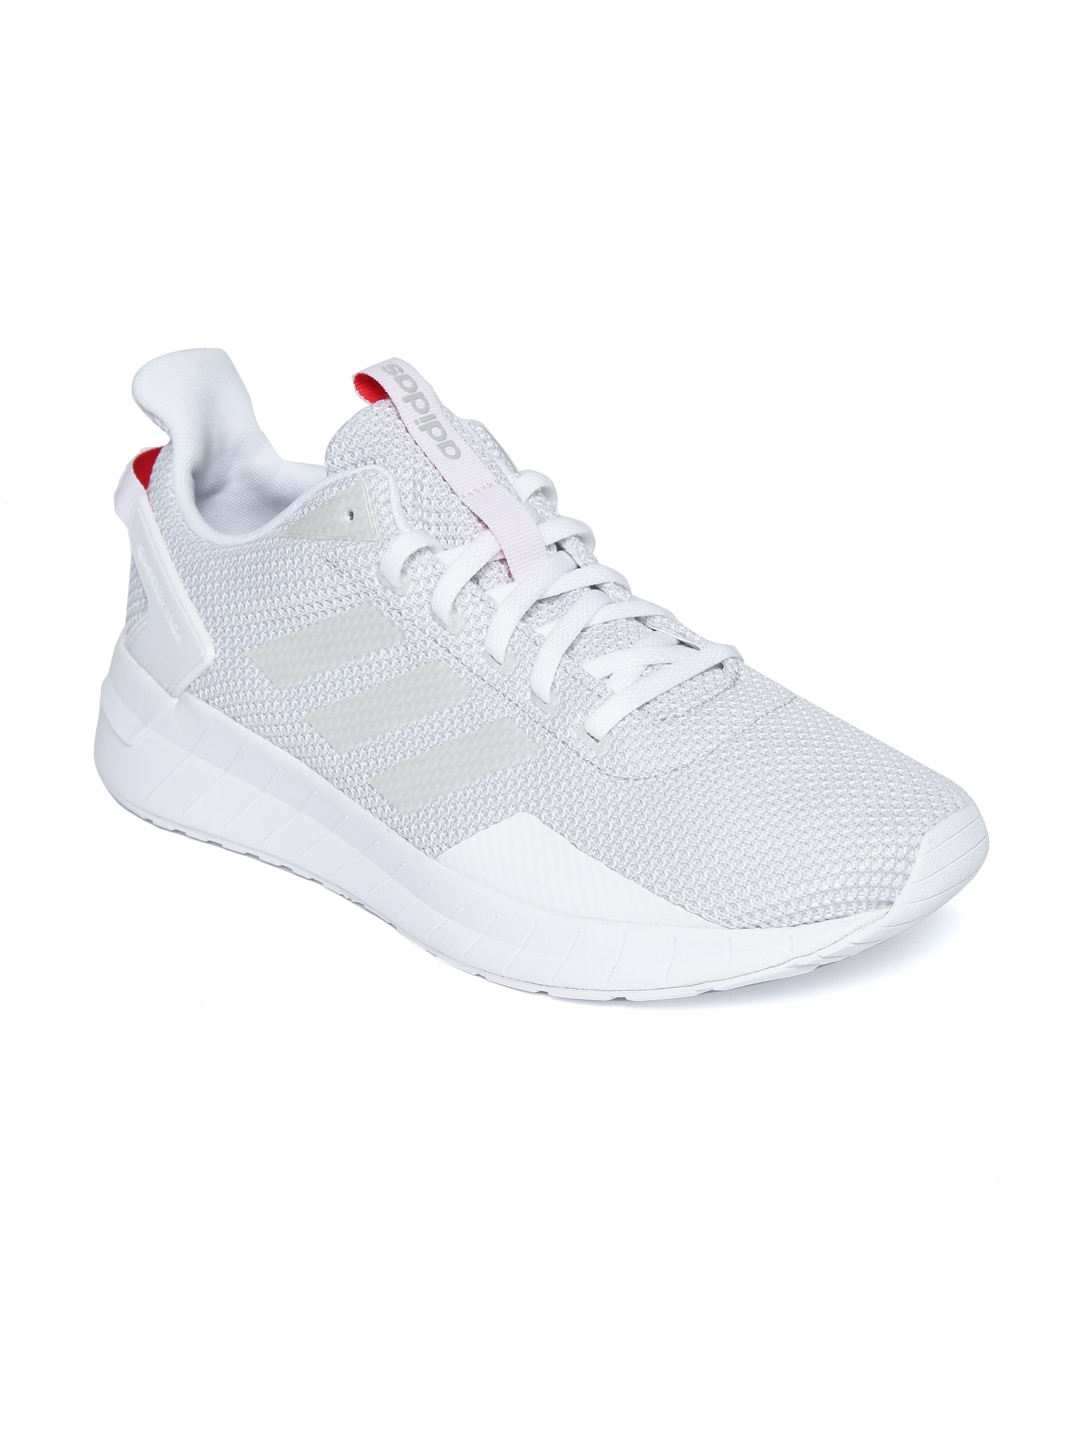 huge discount 0e349 03849 Adidas Grey Running Shoes - Buy Adidas Grey Running Shoes online in India